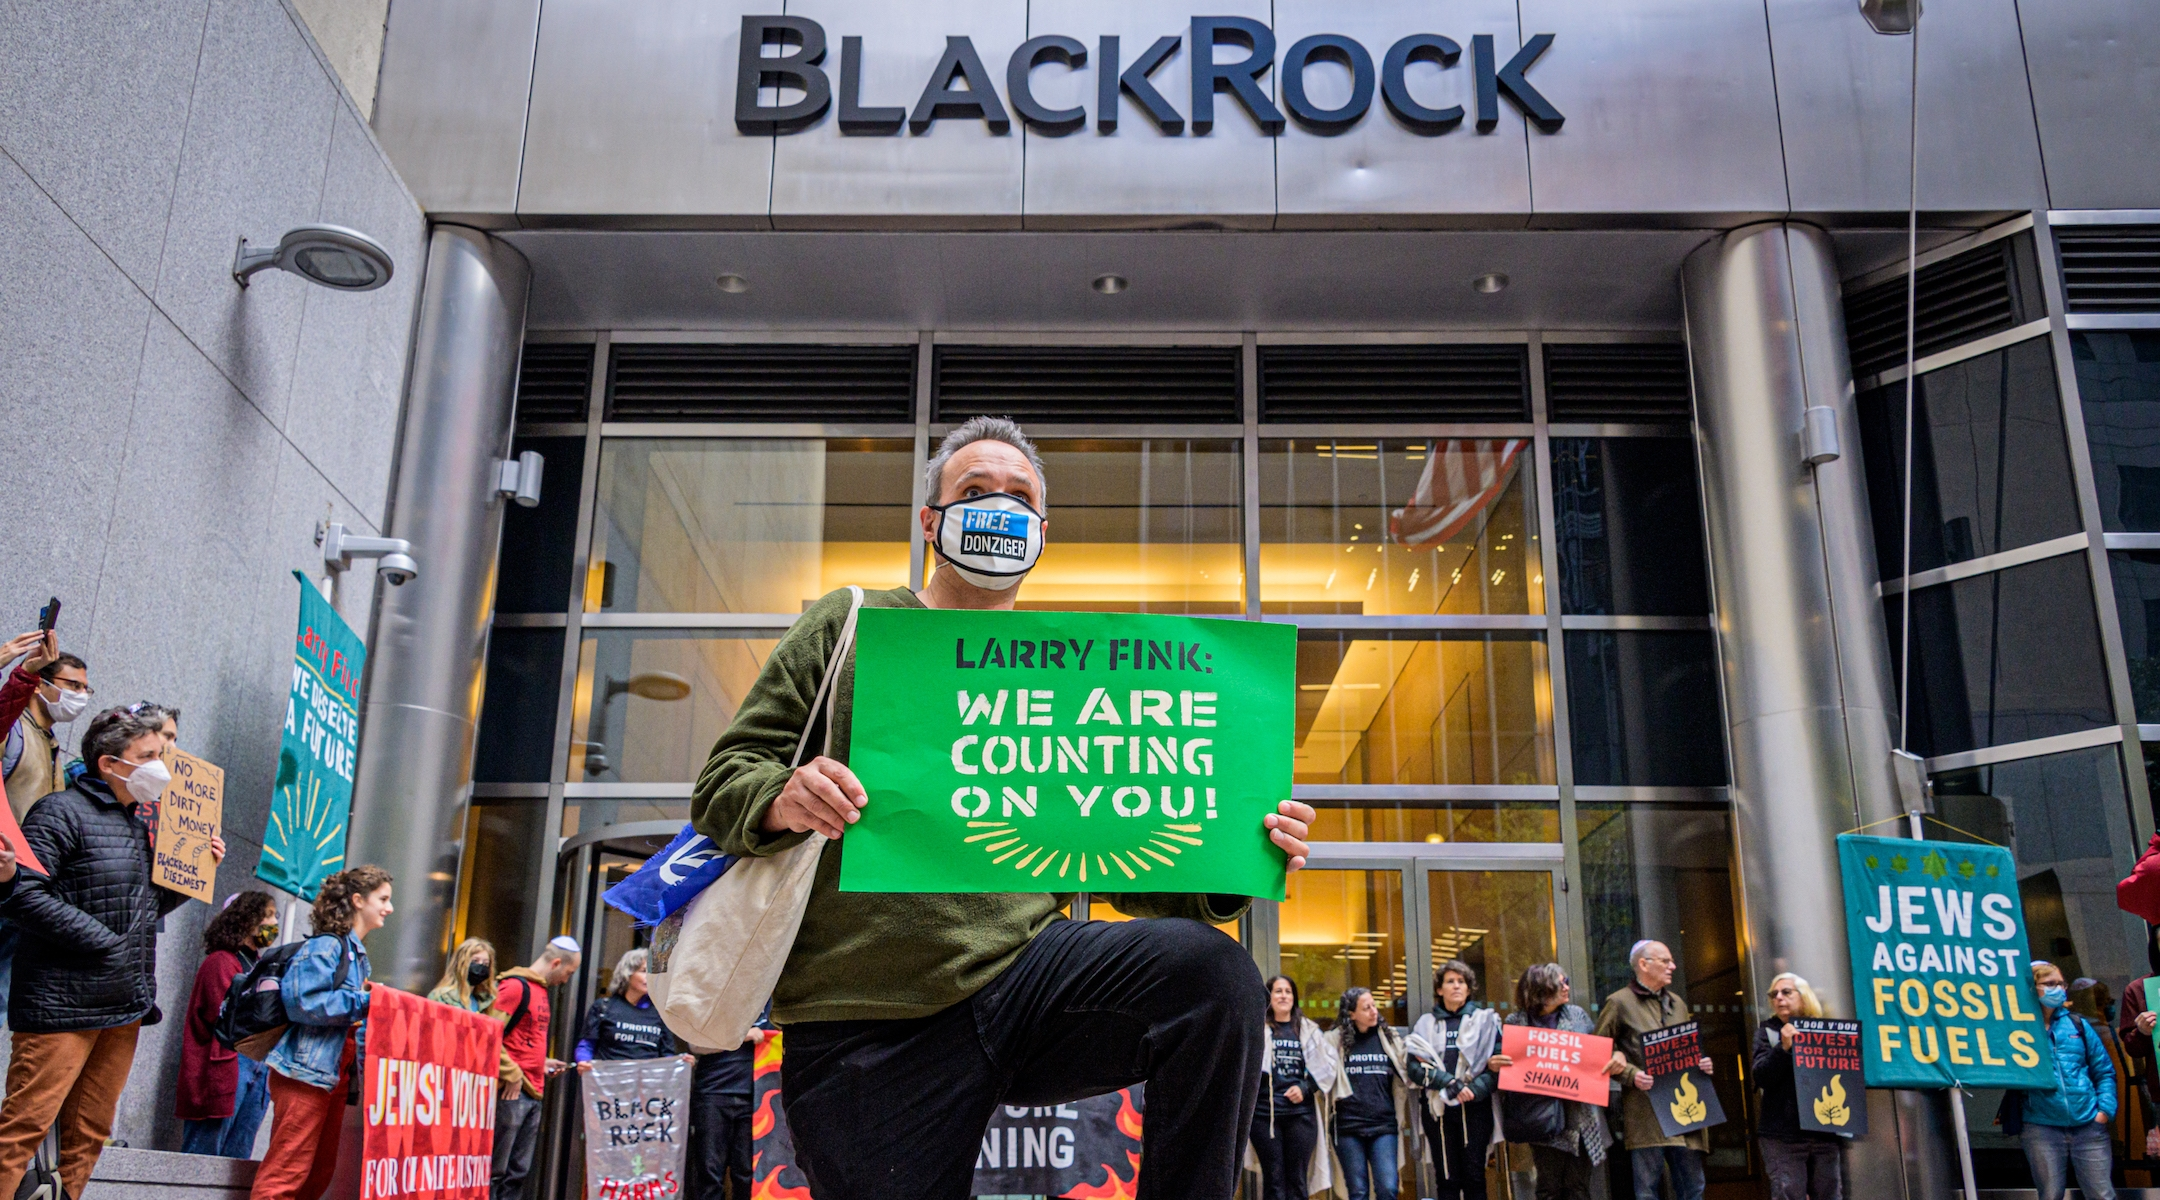 Rabbis arrested demanding climate action by Wall Street giant's Jewish CEO